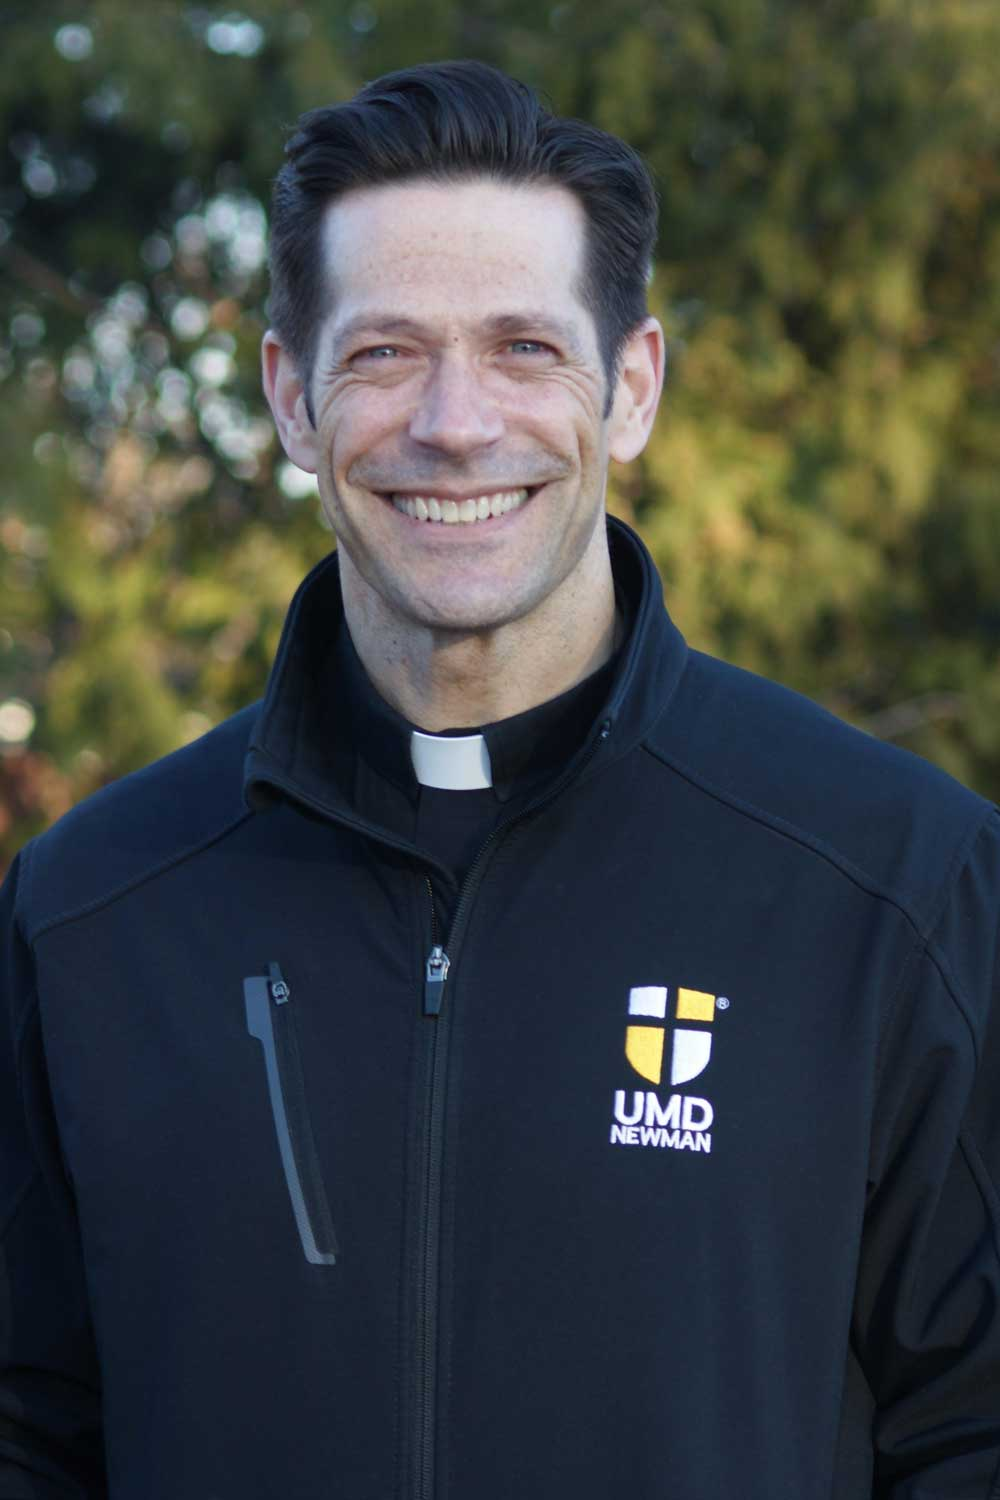 father-mike-schmitz-umd-bulldog-catholic-photo-portrait